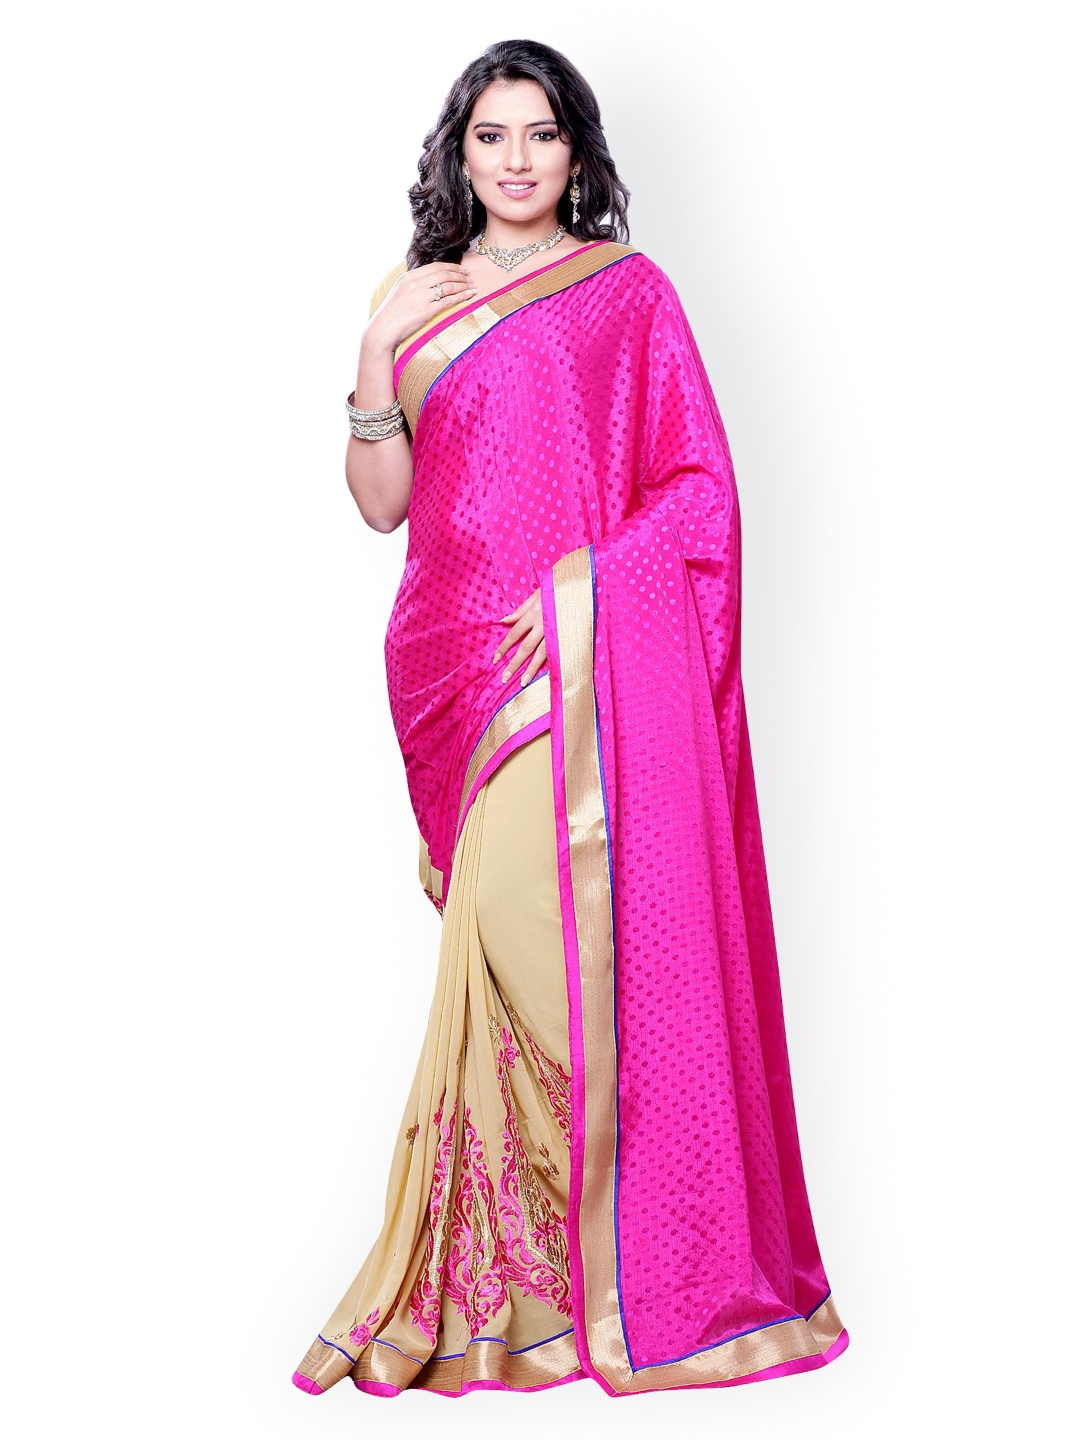 Myntra Colors Pink Beige Embroidered Georgette Jacquard Fashion Saree 871373 Buy Myntra 7